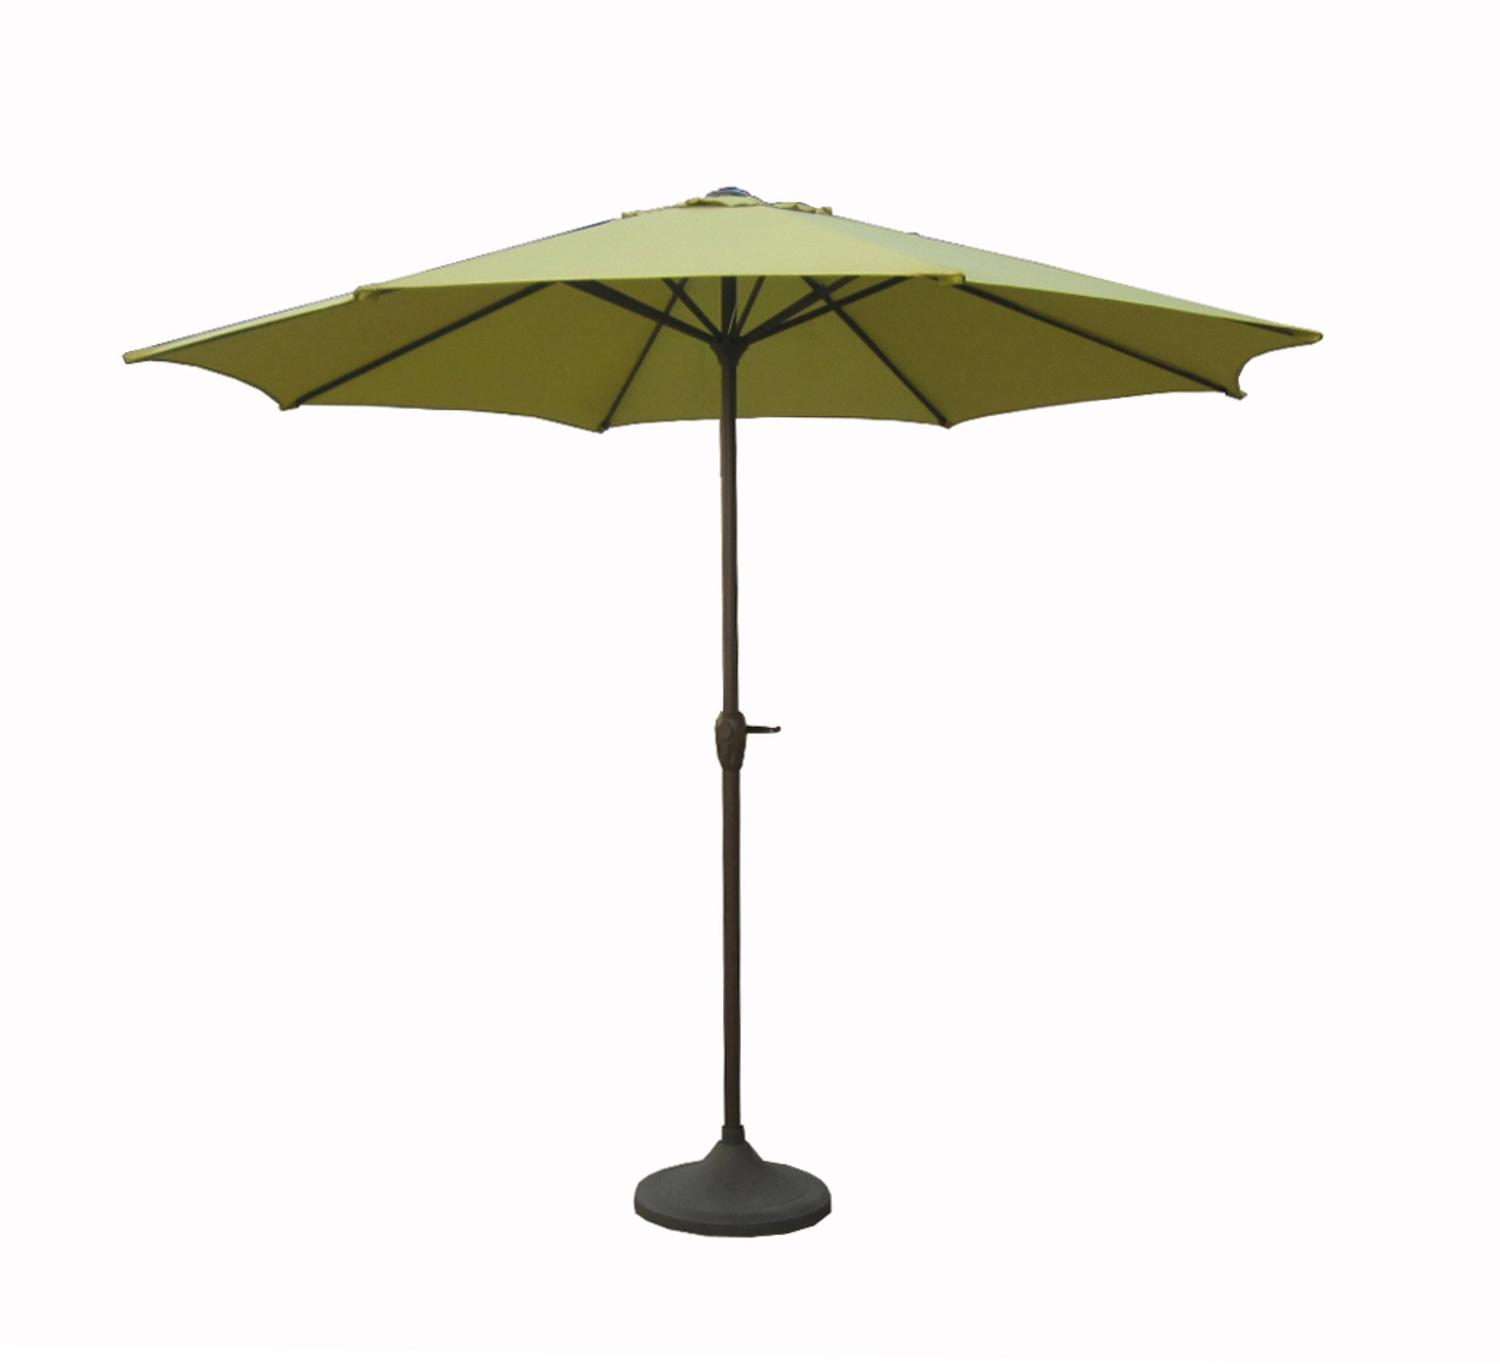 9' Outdoor Patio Market Umbrella with Hand Crank and Tilt Sage Brown and Black by LB International